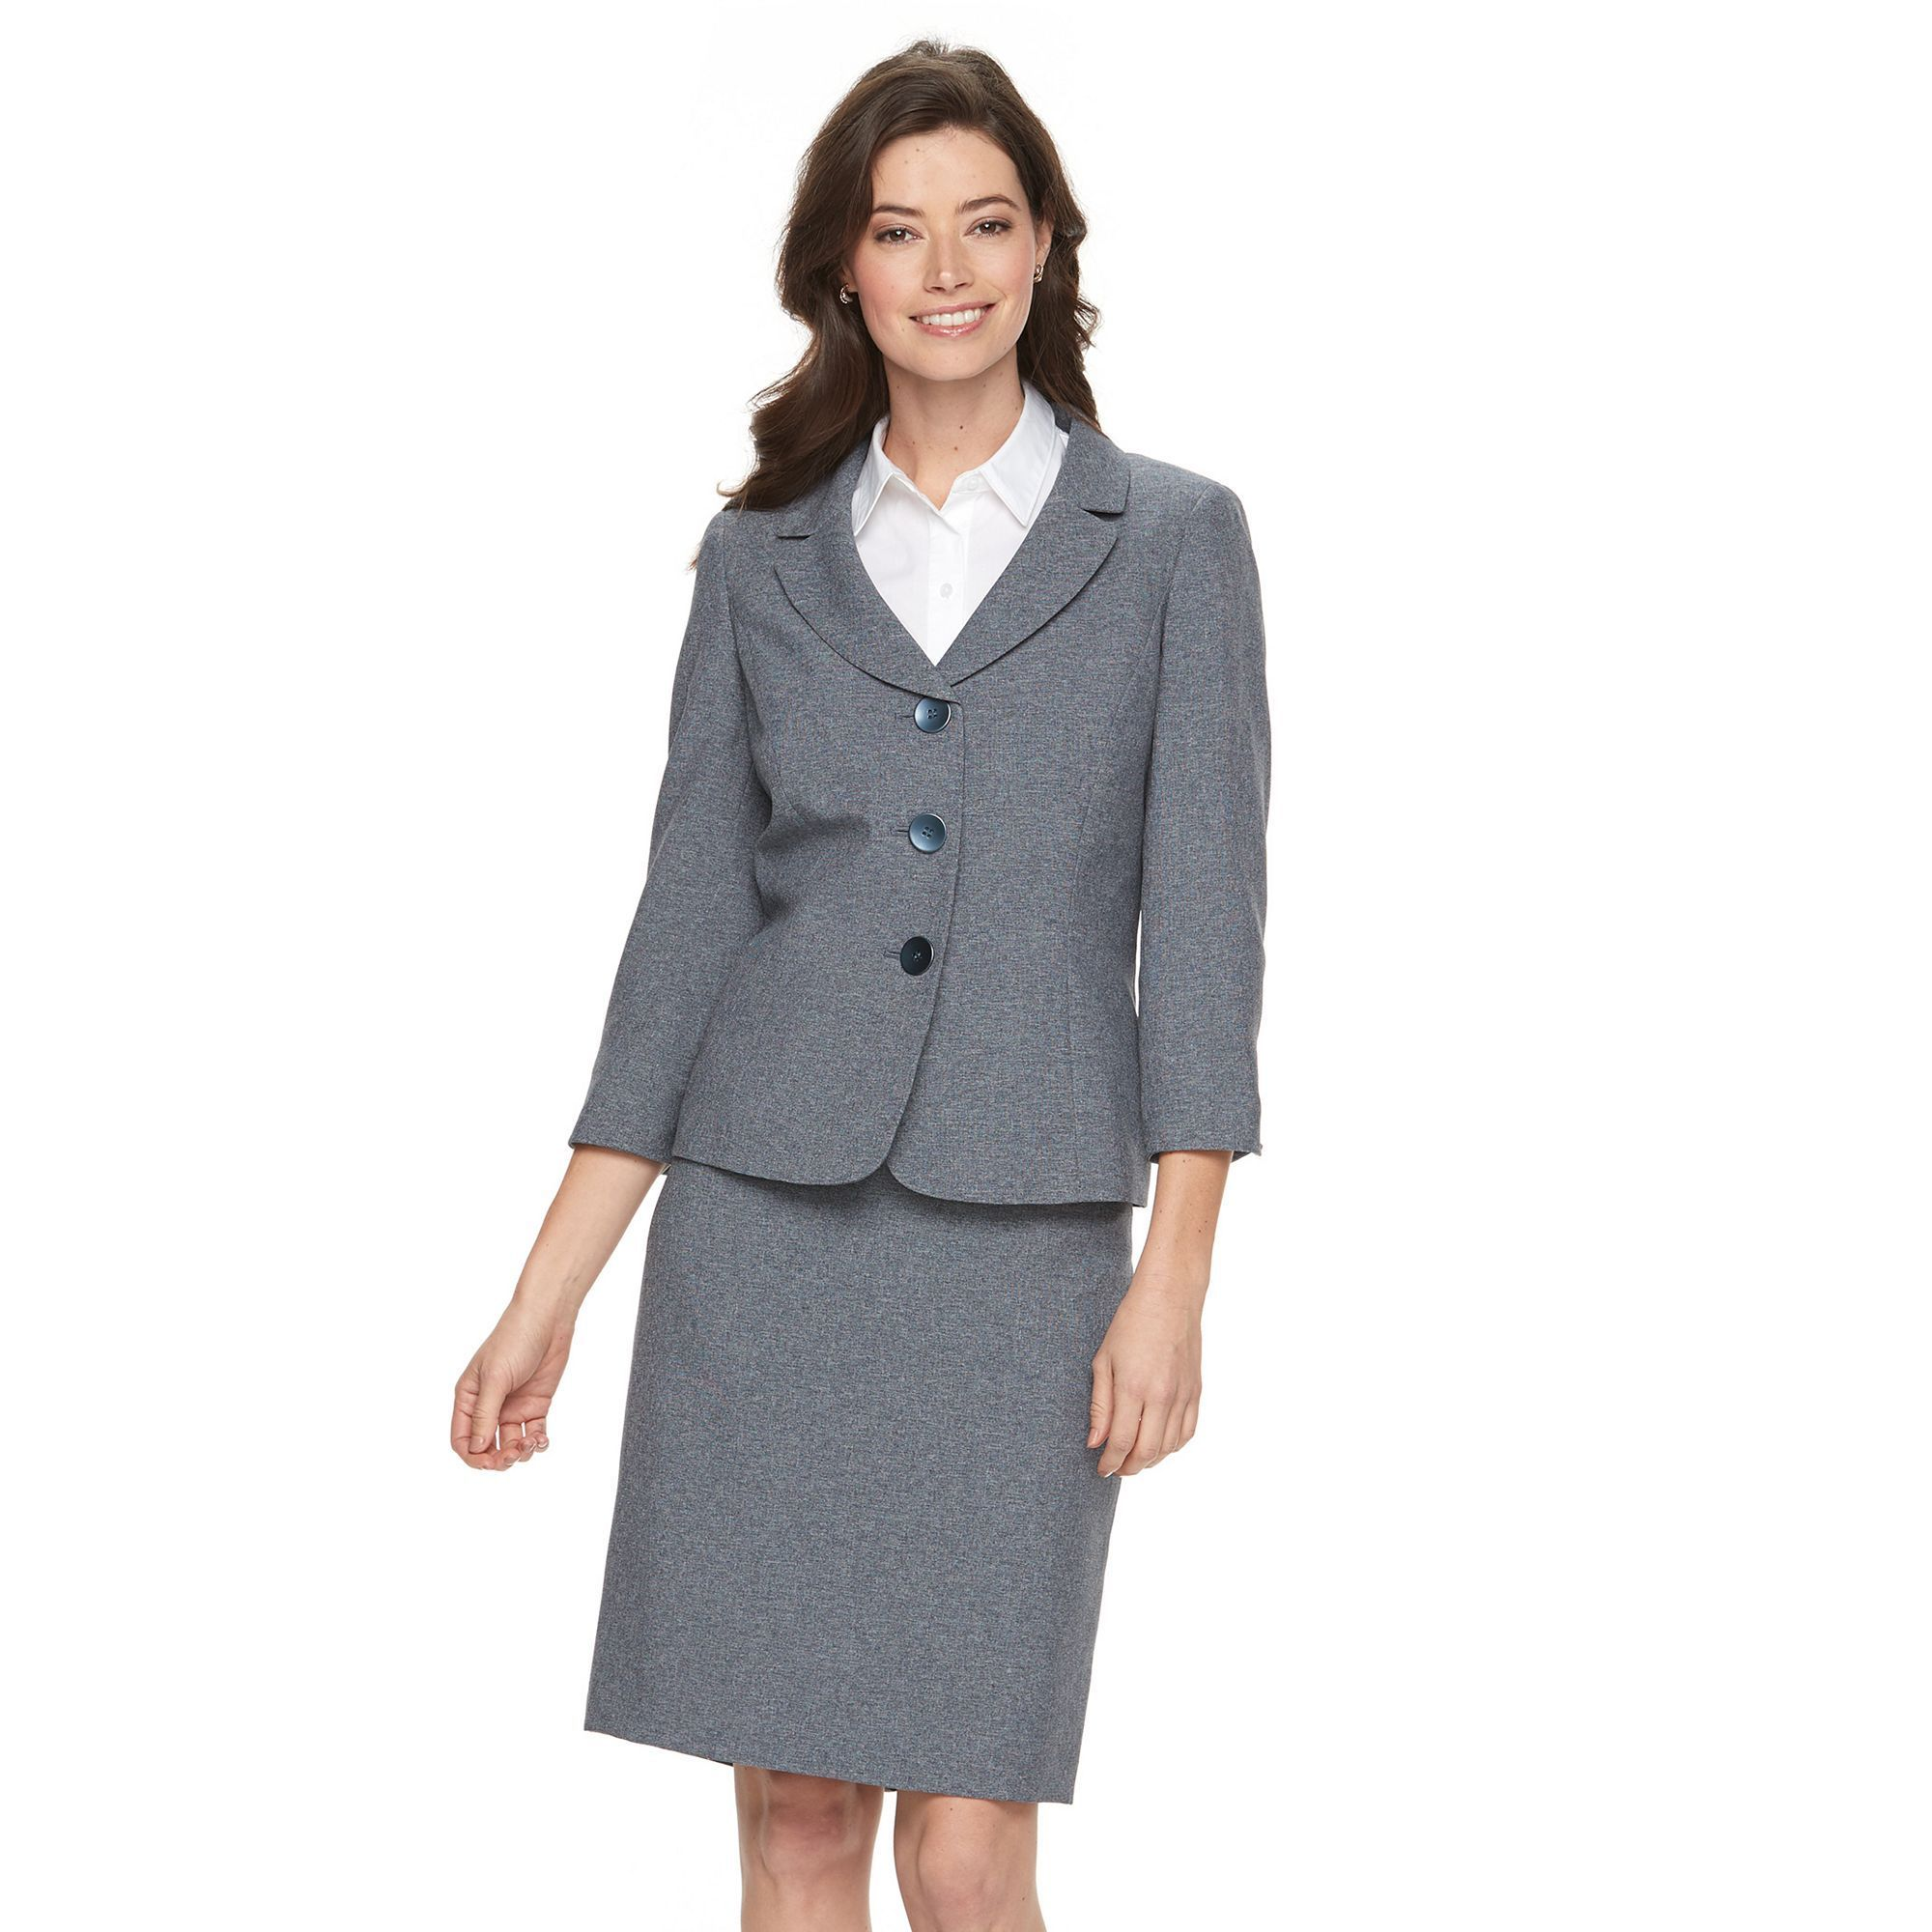 Women's Le Suit Solid Gray Suit Jacket & Pencil Skirt Set, Size ...